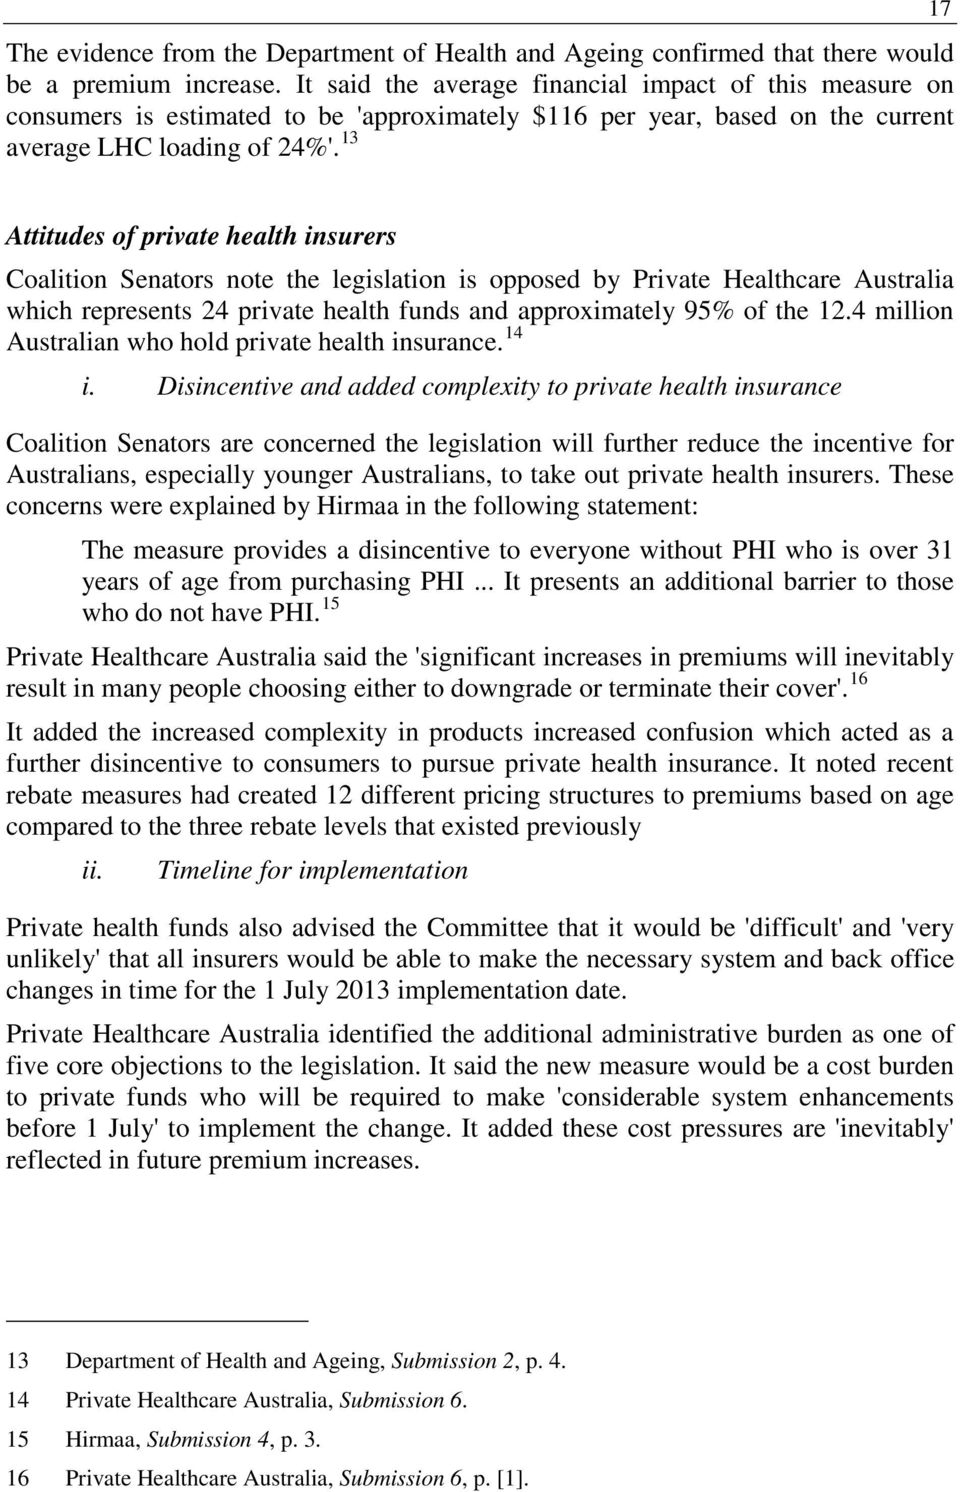 13 17 Attitudes of private health insurers Coalition Senators note the legislation is opposed by Private Healthcare Australia which represents 24 private health funds and approximately 95% of the 12.